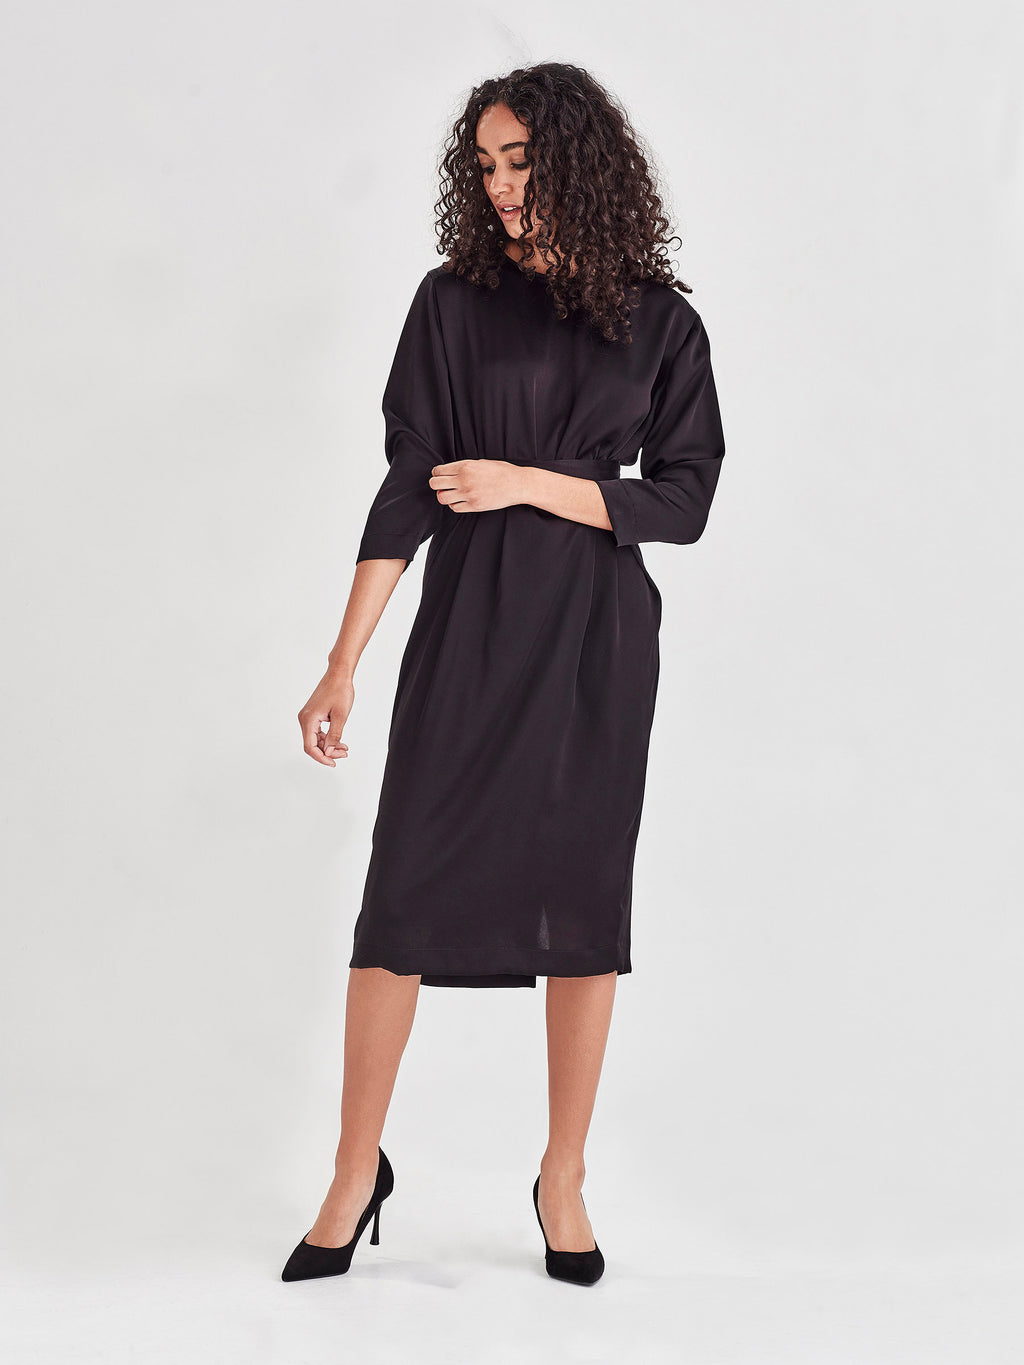 Valencia Dress (Satin Triacetate) Black